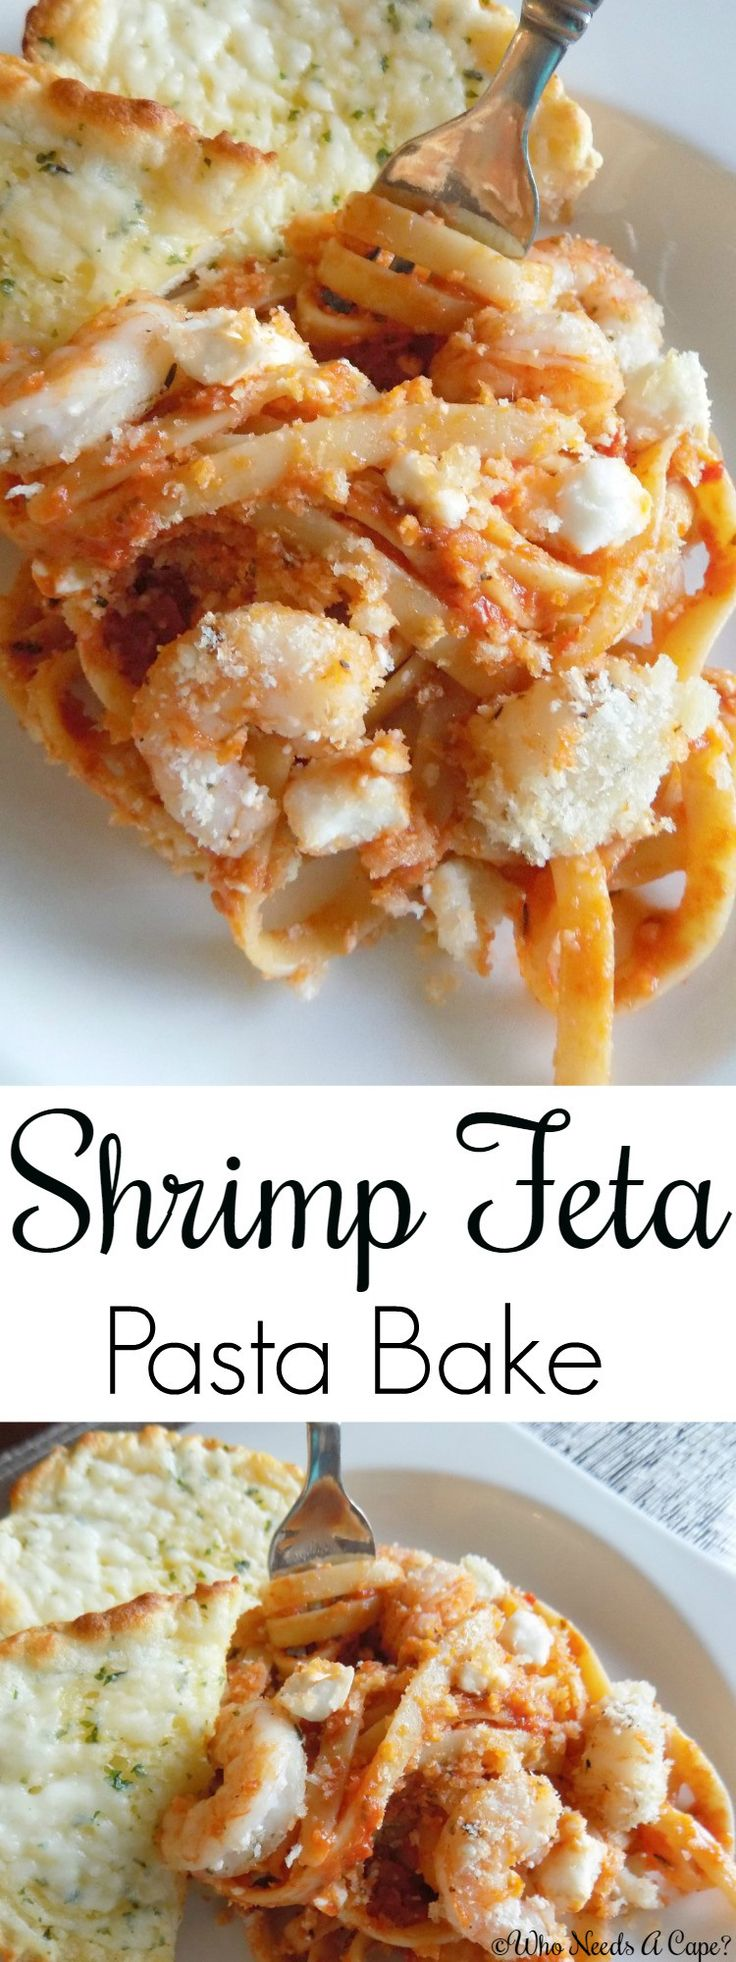 Wonderful flavors blend together in this simple Shrimp Feta Pasta Bake. Sauce, pasta, shrimp, cheese all baked together with a crunch topping. So yummy! #SimmeredInTradition [ad]